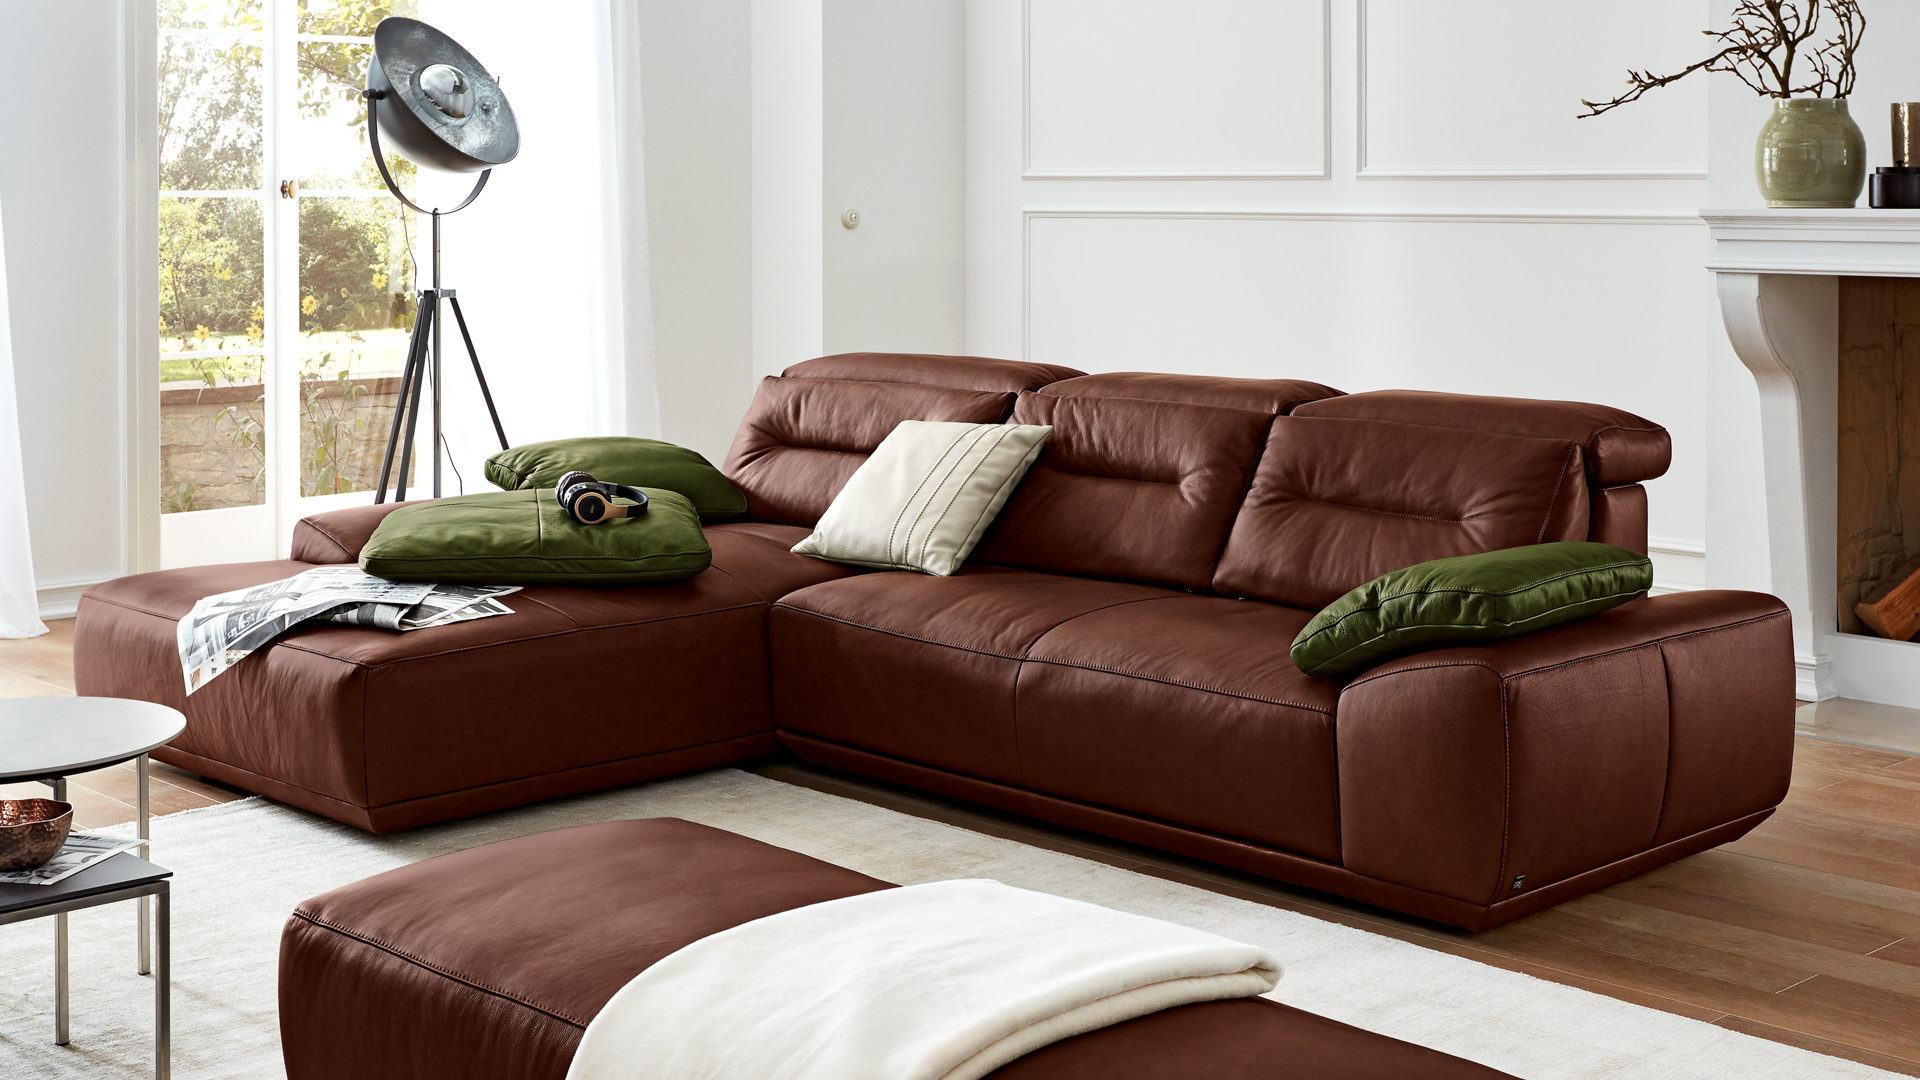 Ecksofa Interliving aus Leder in Braun Interliving Sofa Serie 4000 – Eckkombination chocolatefarbenes Leder Z83.54 – Schenkelmaß ca. 209 x 310 cm